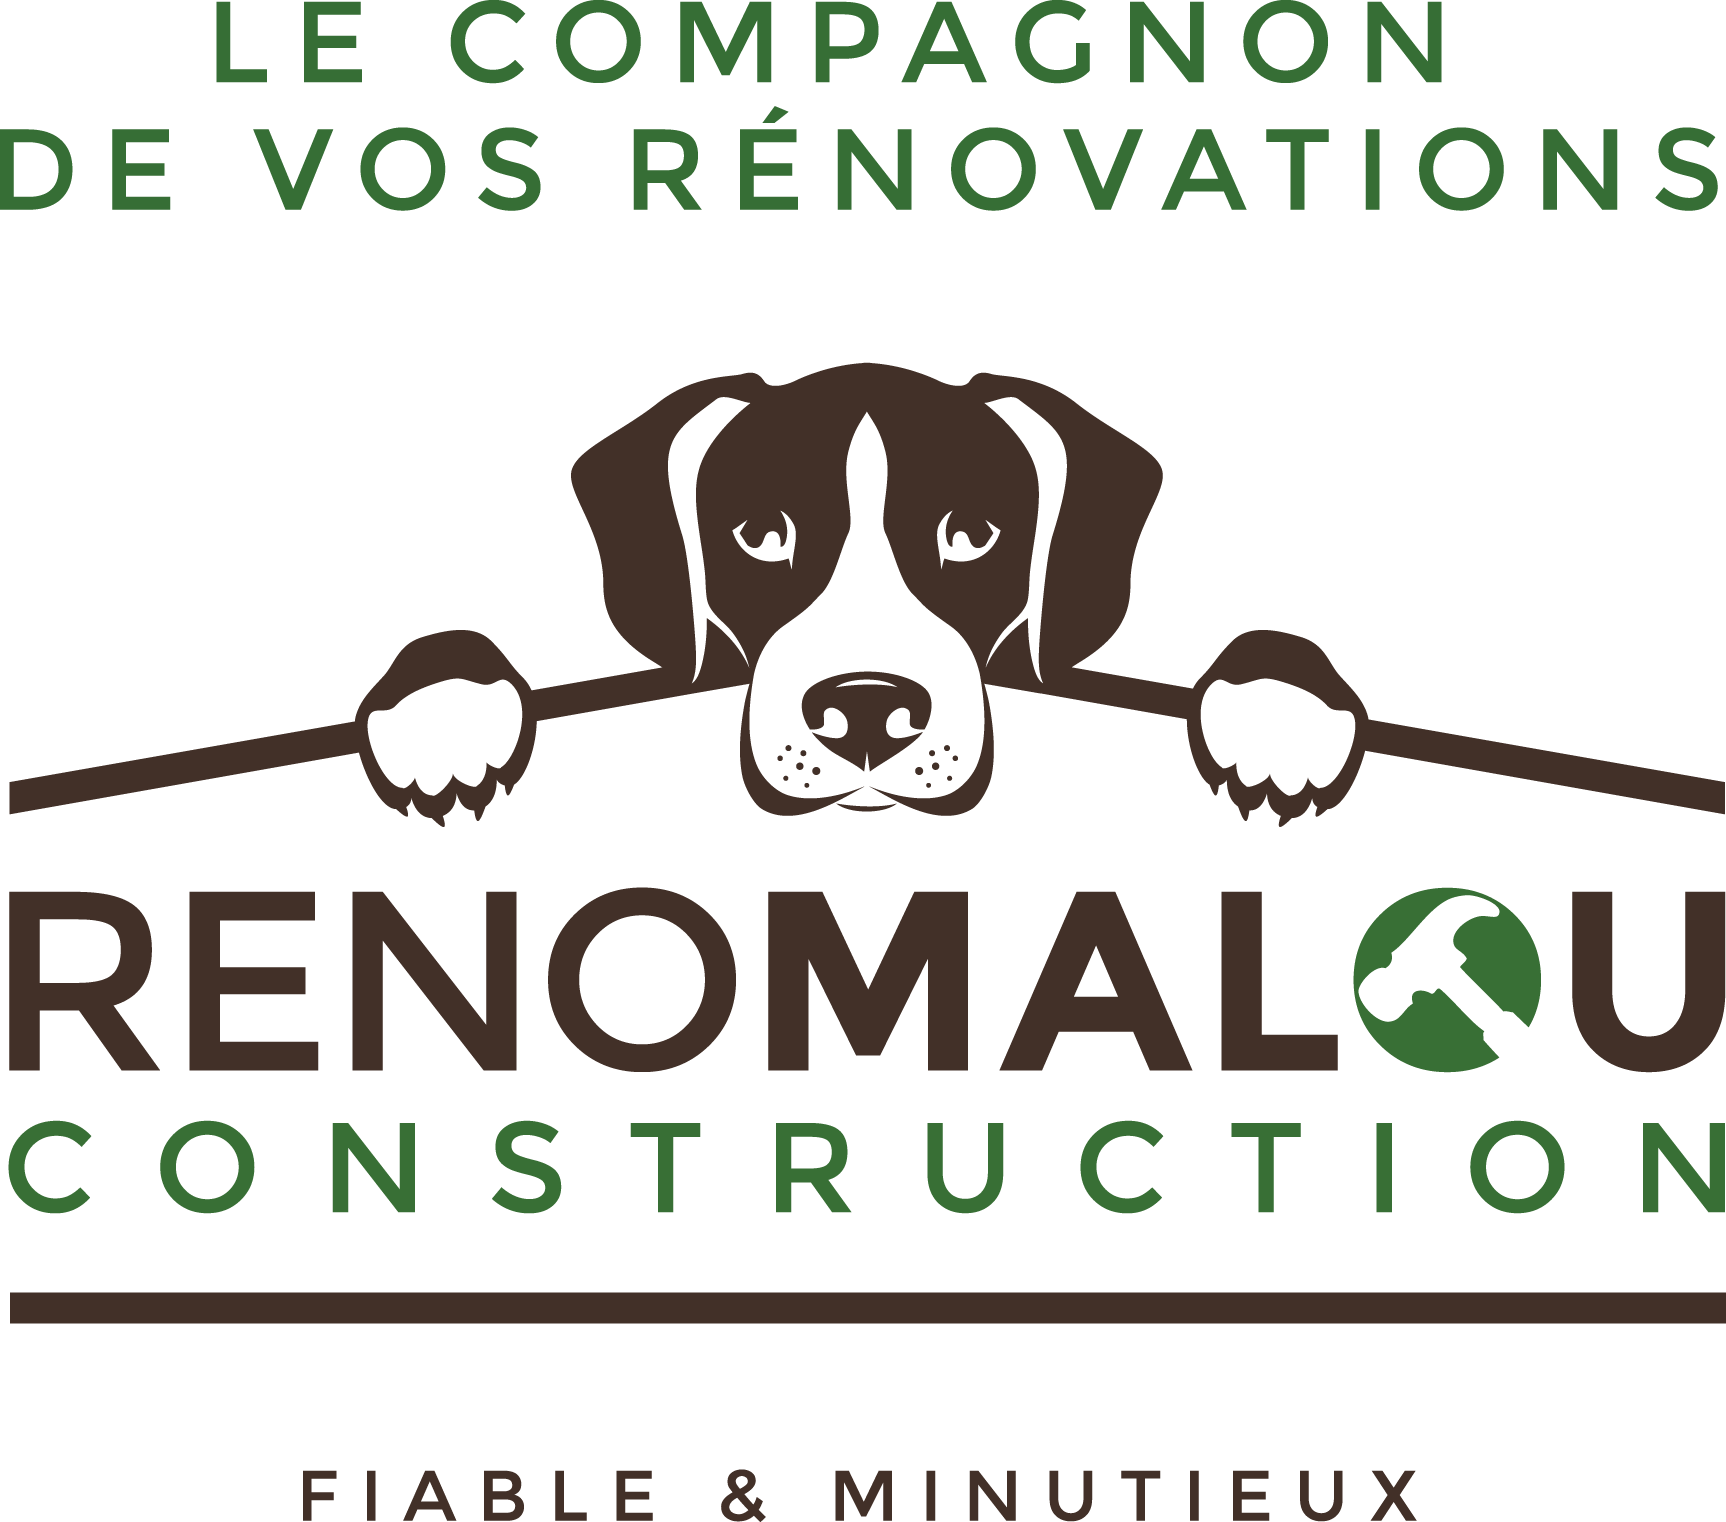 renomalou construction